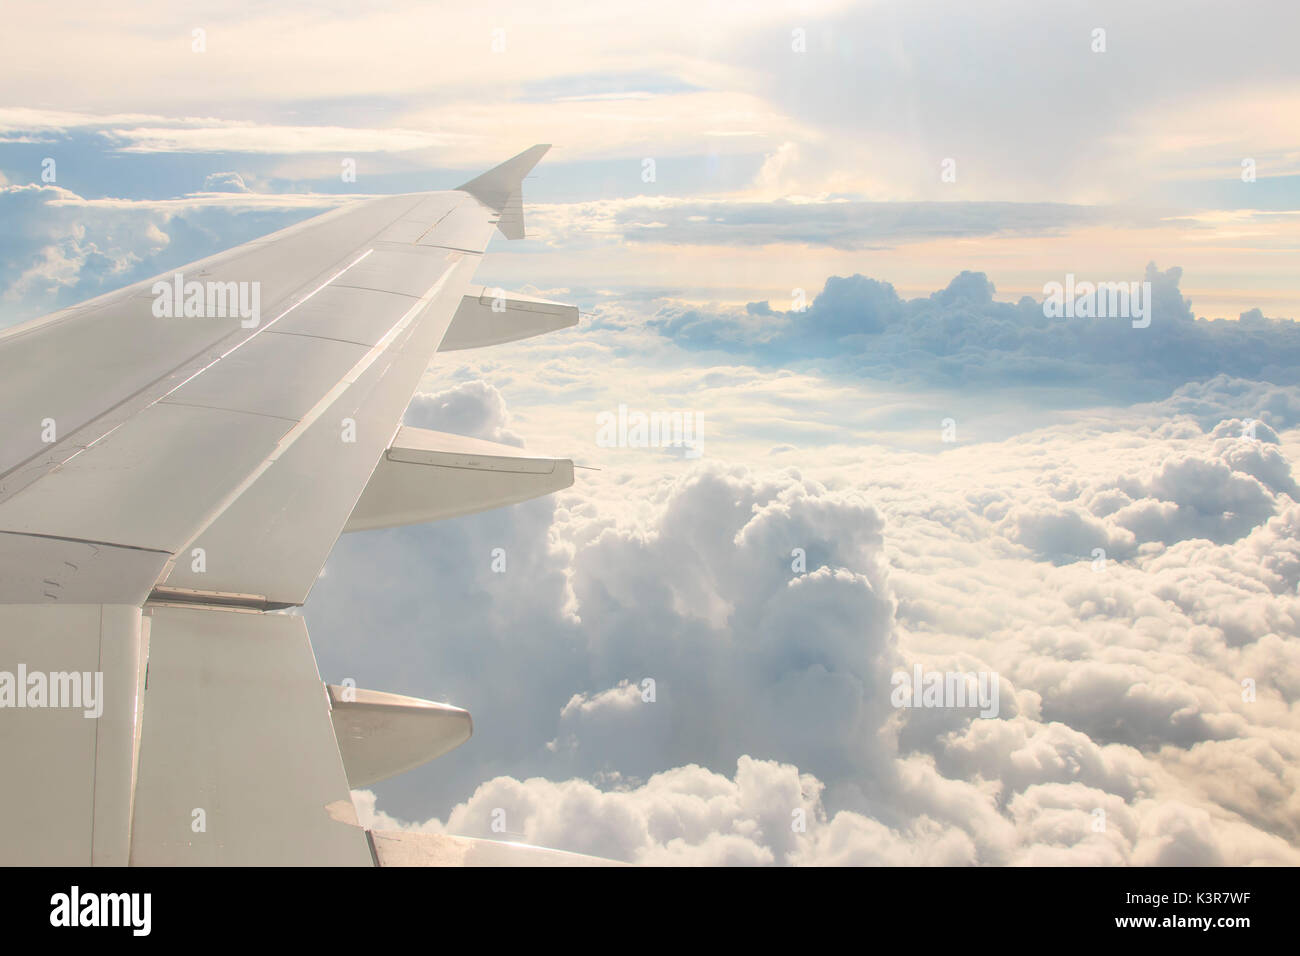 Looking through the window aircraft during the flight, Philippines - Stock Image